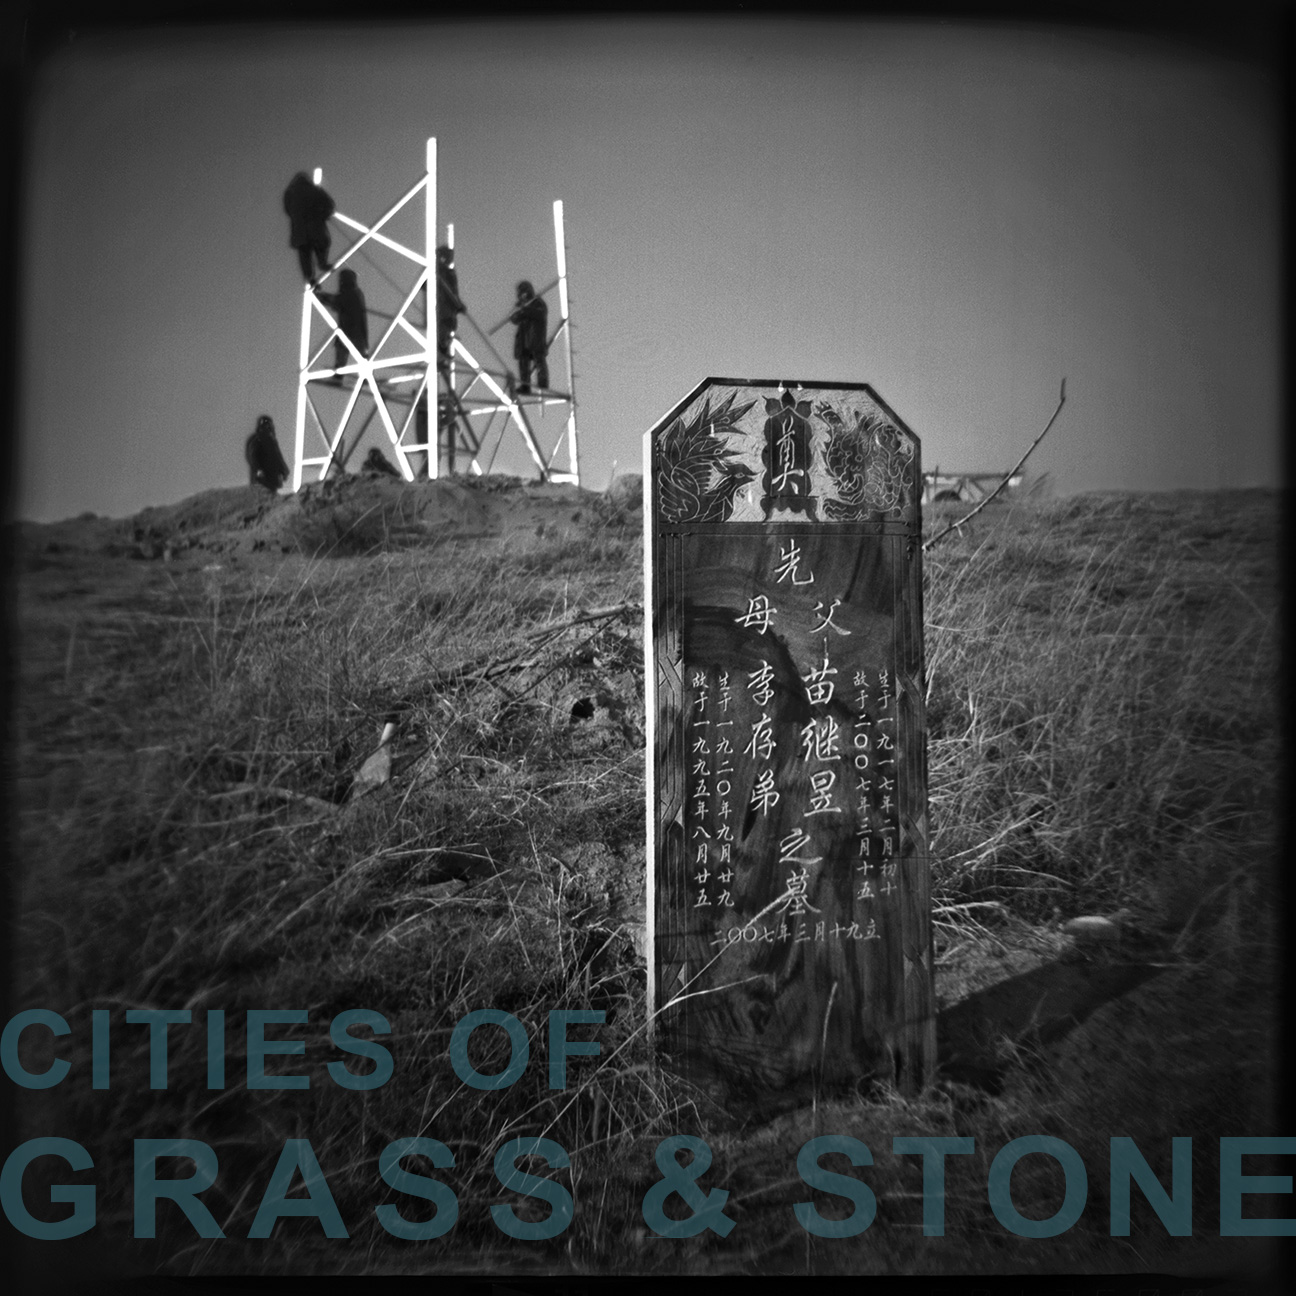 CitiesOfGrassAndStone-TITLE-Website-June2017-B-FINAL